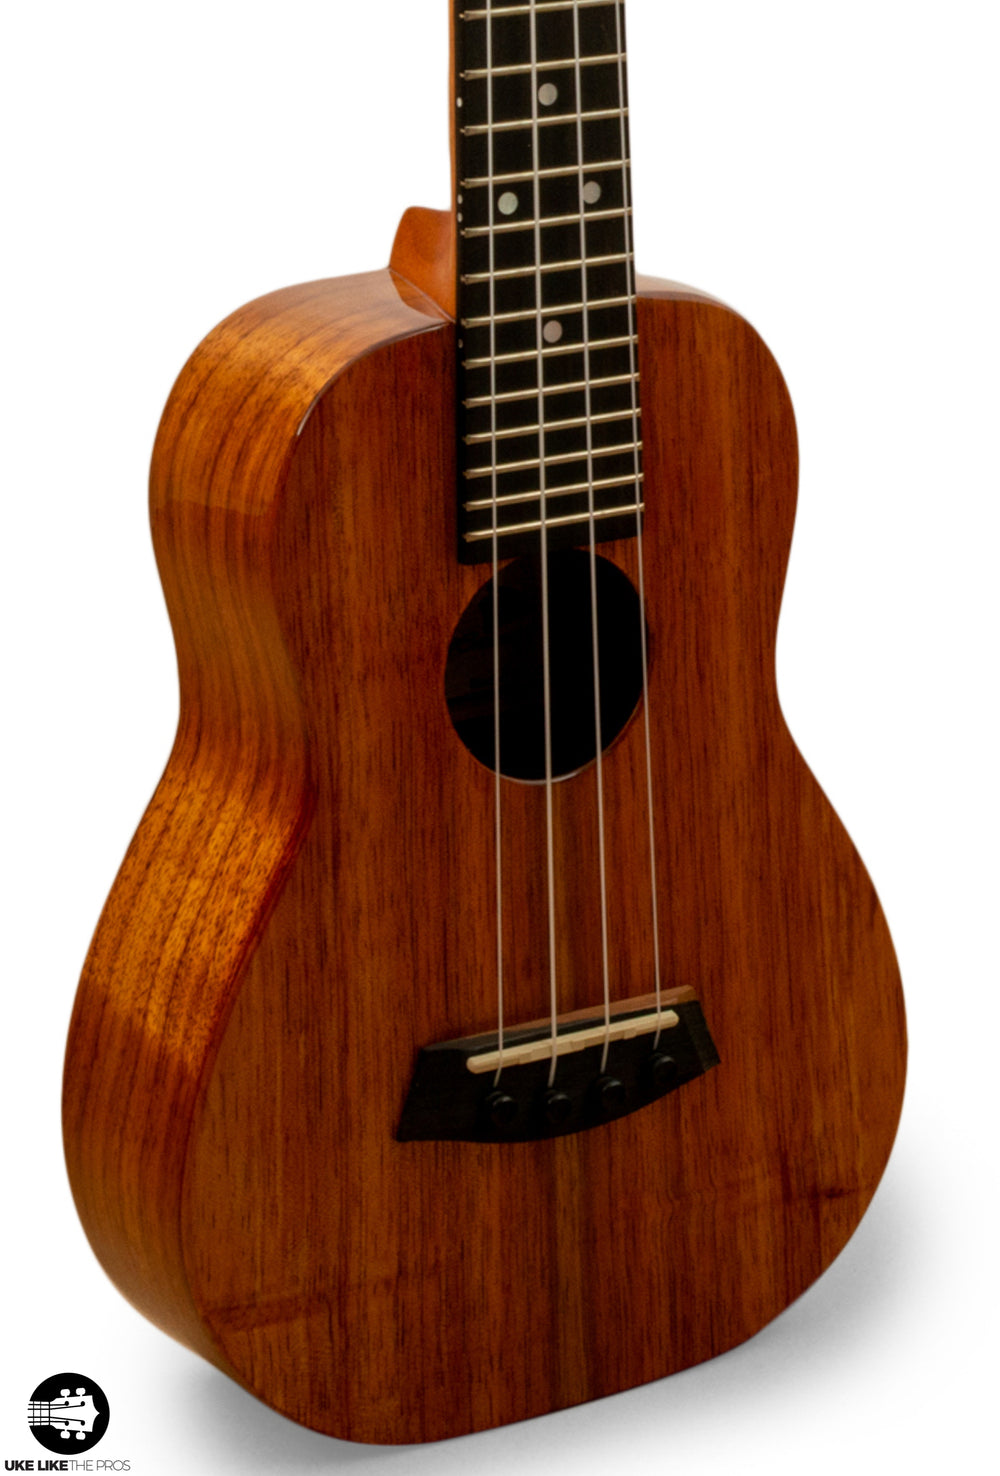 "Kanile'a K-1 C Concert Ukulele Solid Koa ""Ripcurl"" Made in Hawaii"